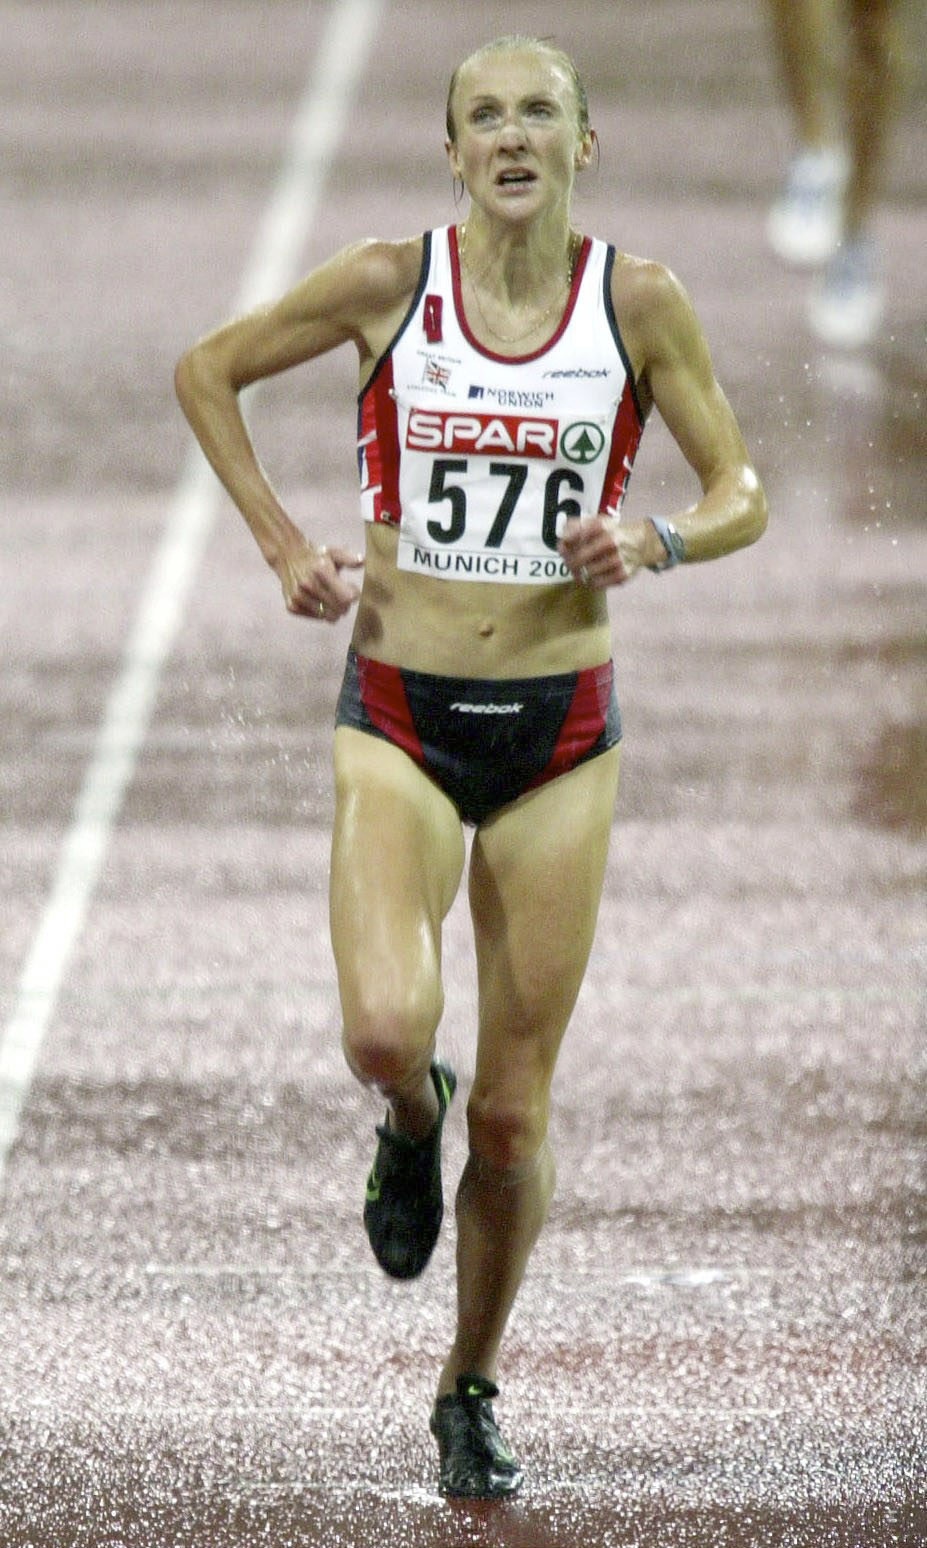 Paula Radcliffe's performance winning the 2002 European Championships at Munich would have been a world record had it not for the earlier performance of China's Wang Junxia, a mark now discredited ©Getty Images